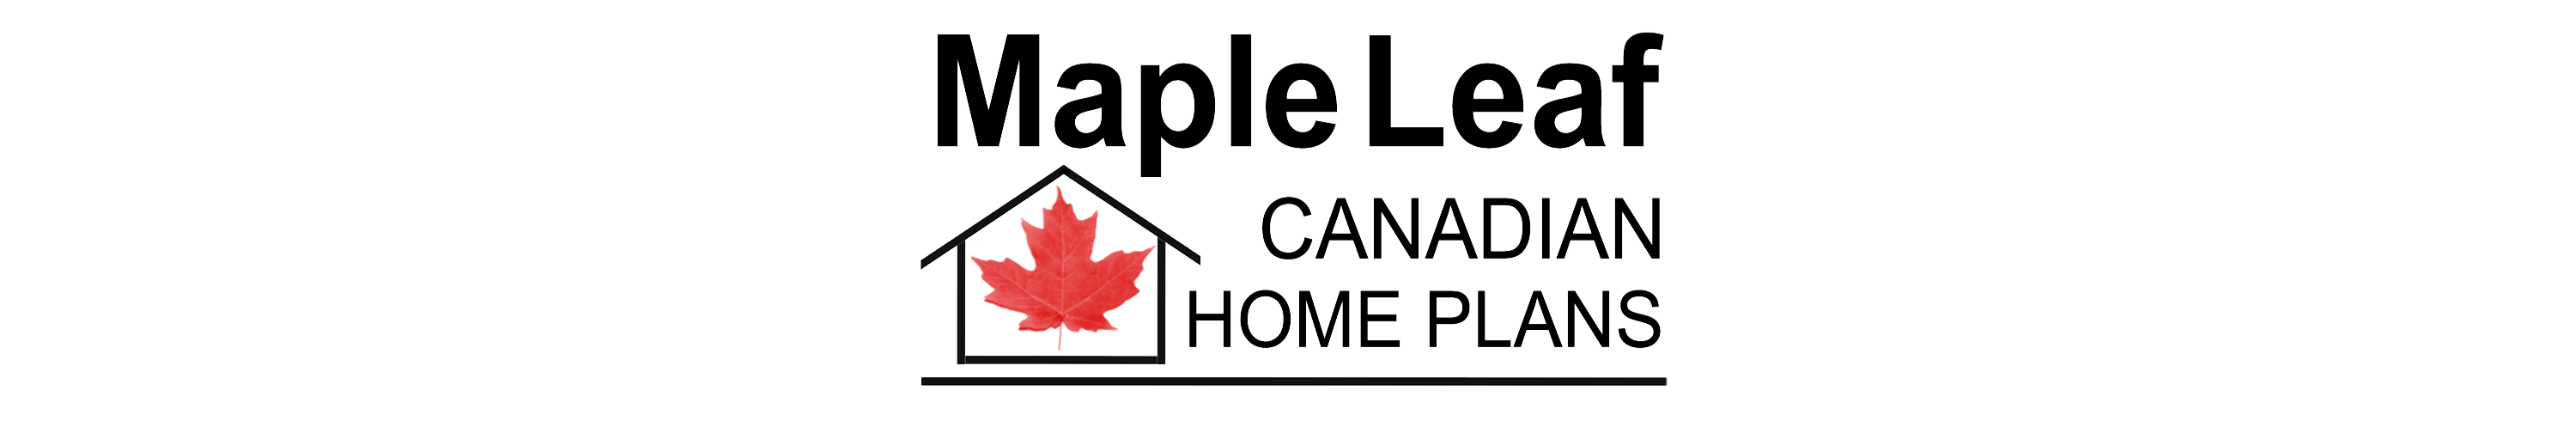 MAPLE LEAF CANADIAN HOME PLANS